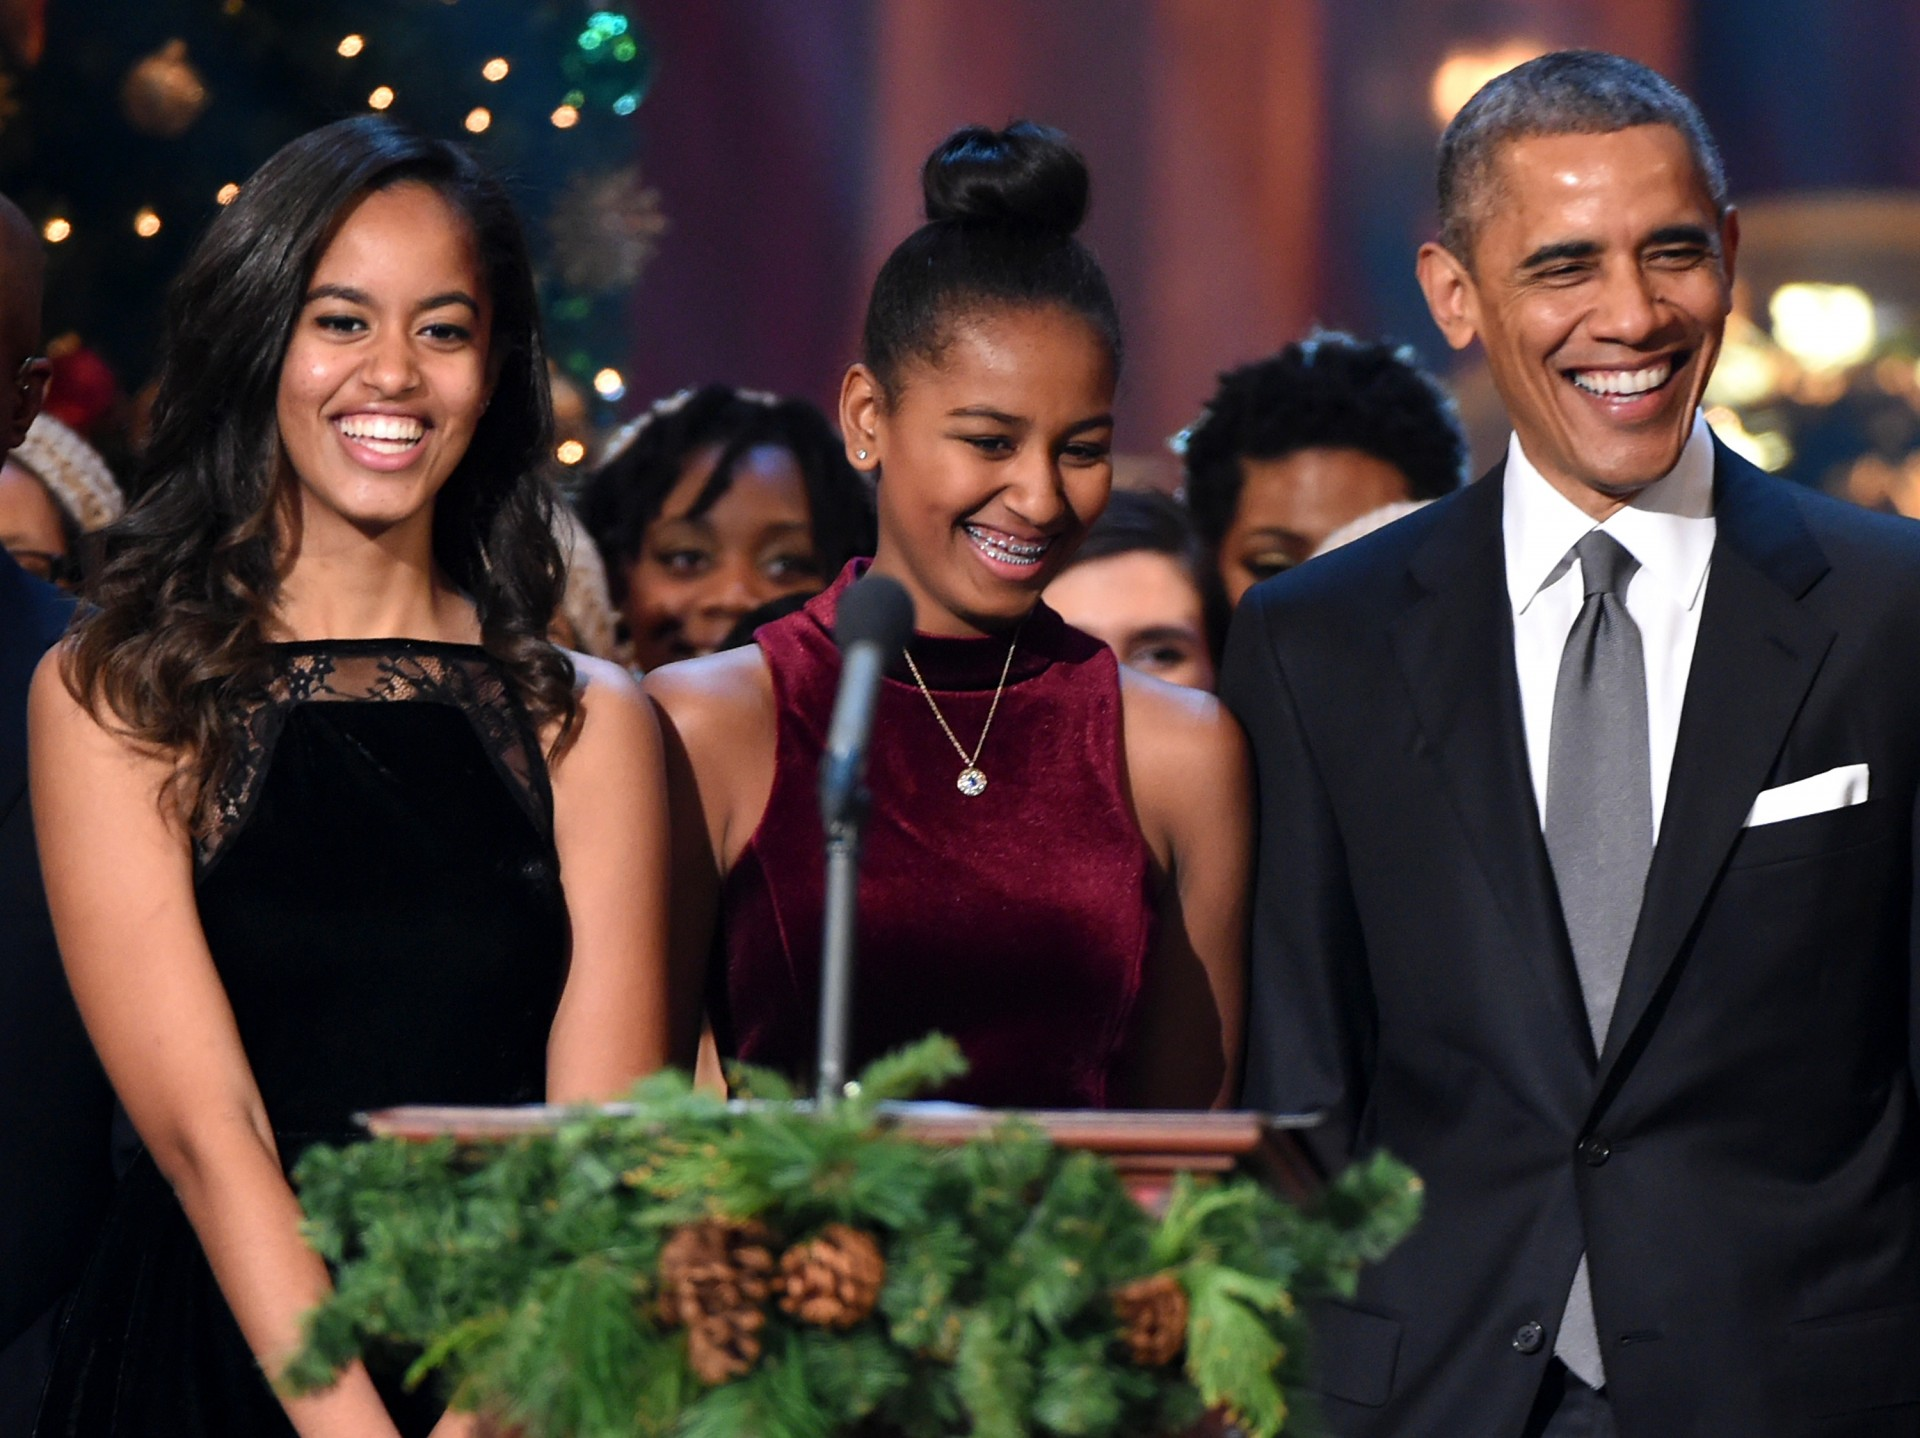 012 Essay Example Marvelous Obama President Research Paper Barack Pdf Michelle 1920